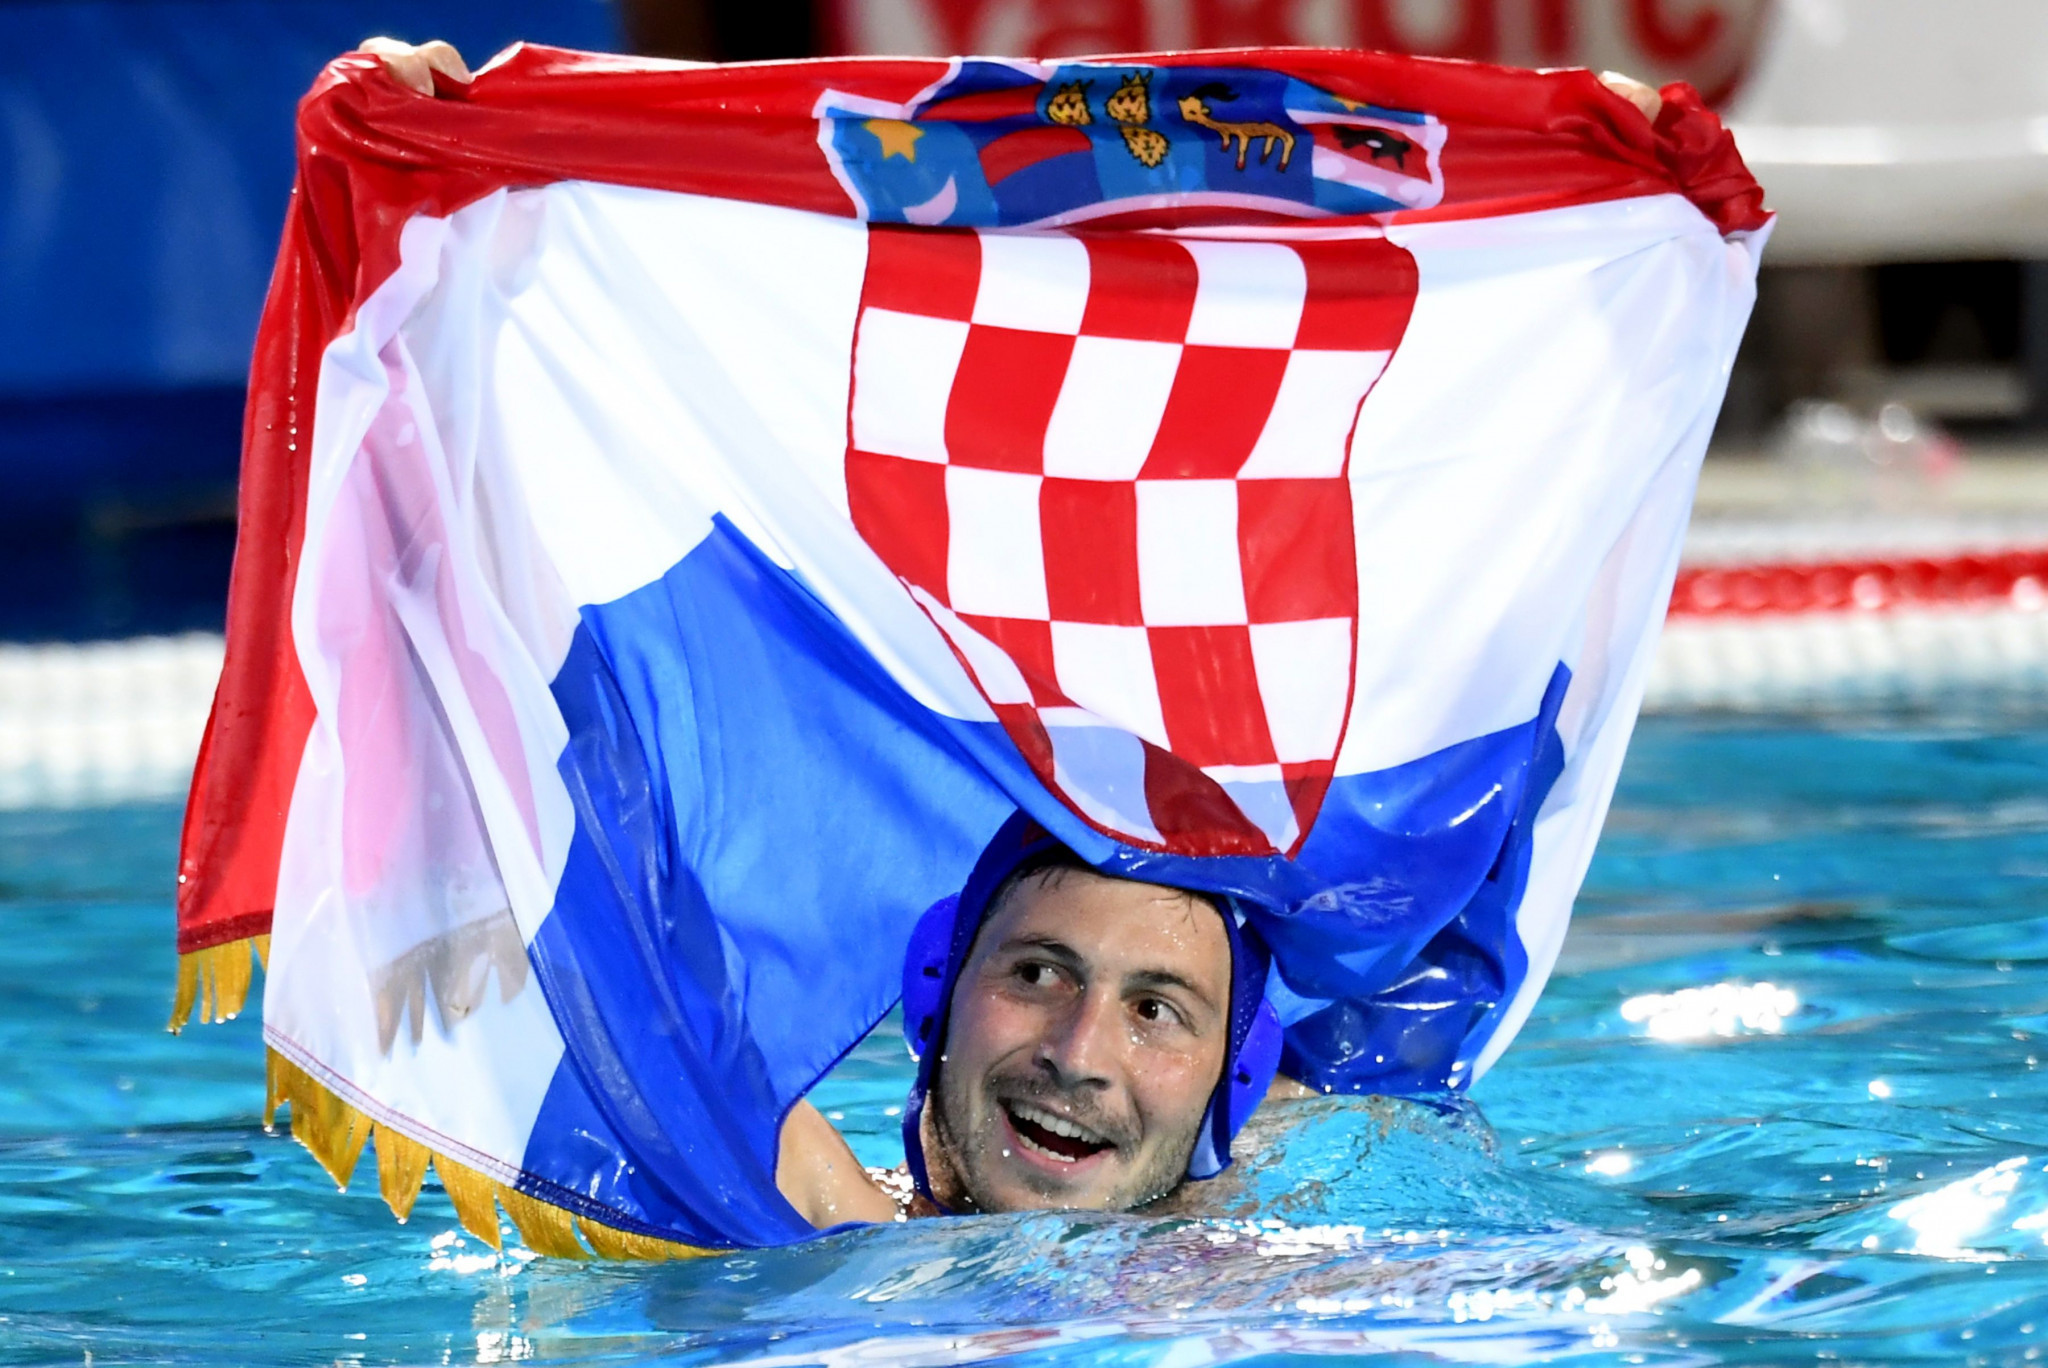 World champions Croatia will be another side to watch in Berlin ©Getty Images